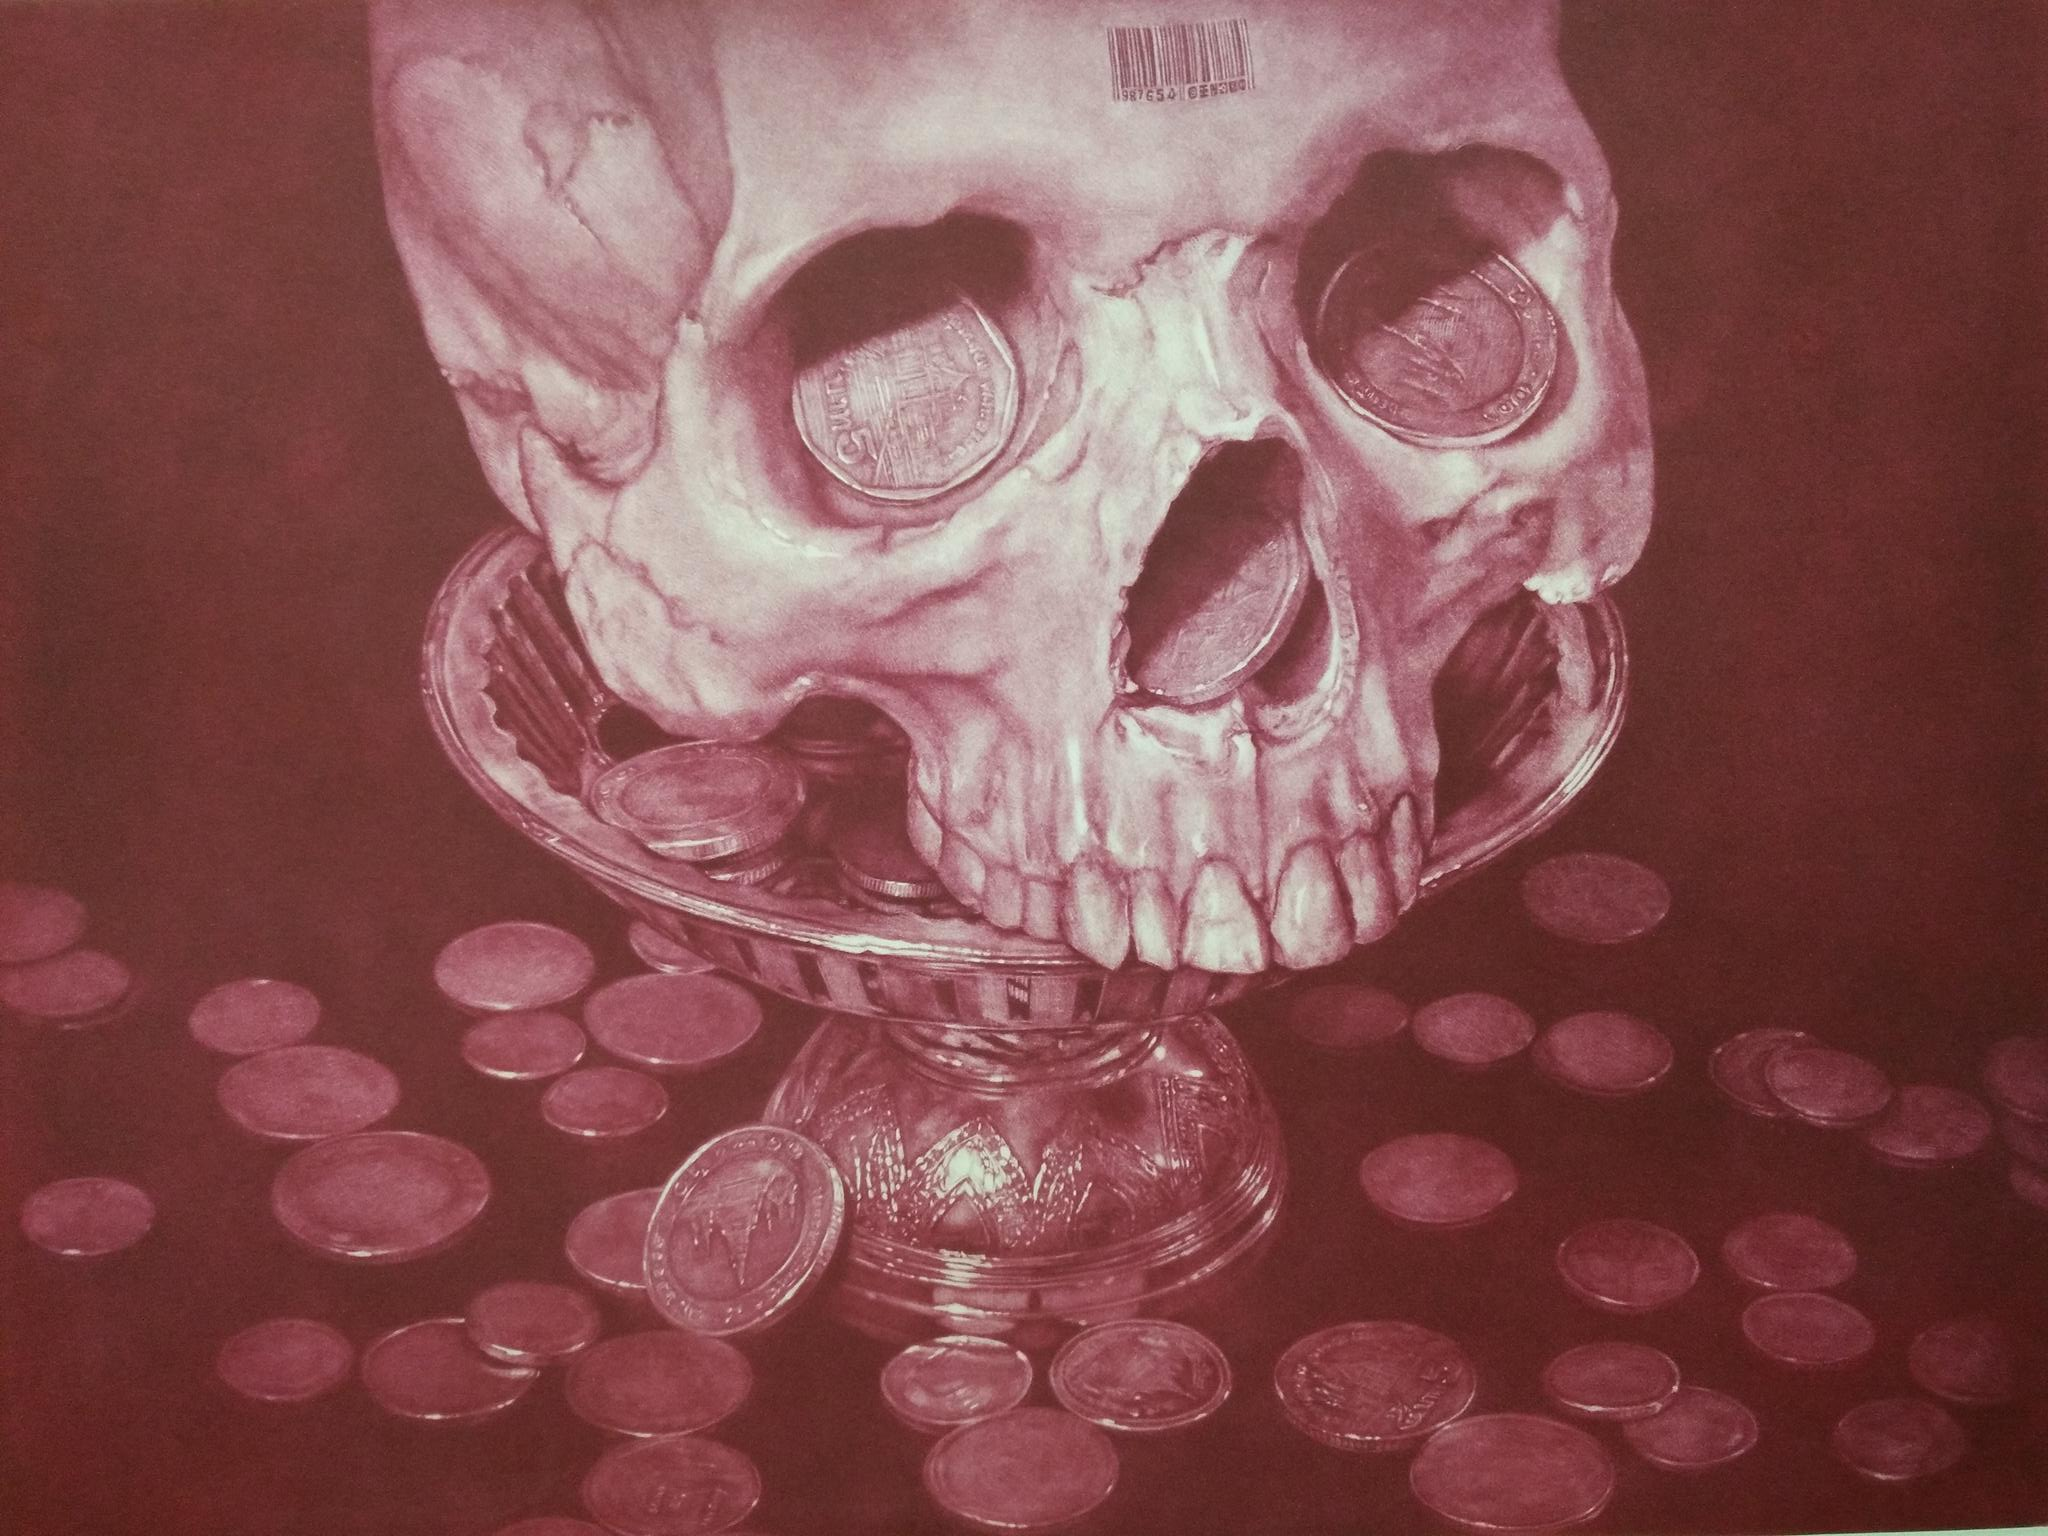 Title: Price of Life (Magenta Edition)   Year: 2018  Size: 45x54 cm  Technique: Mezzotint  Edition: of 25